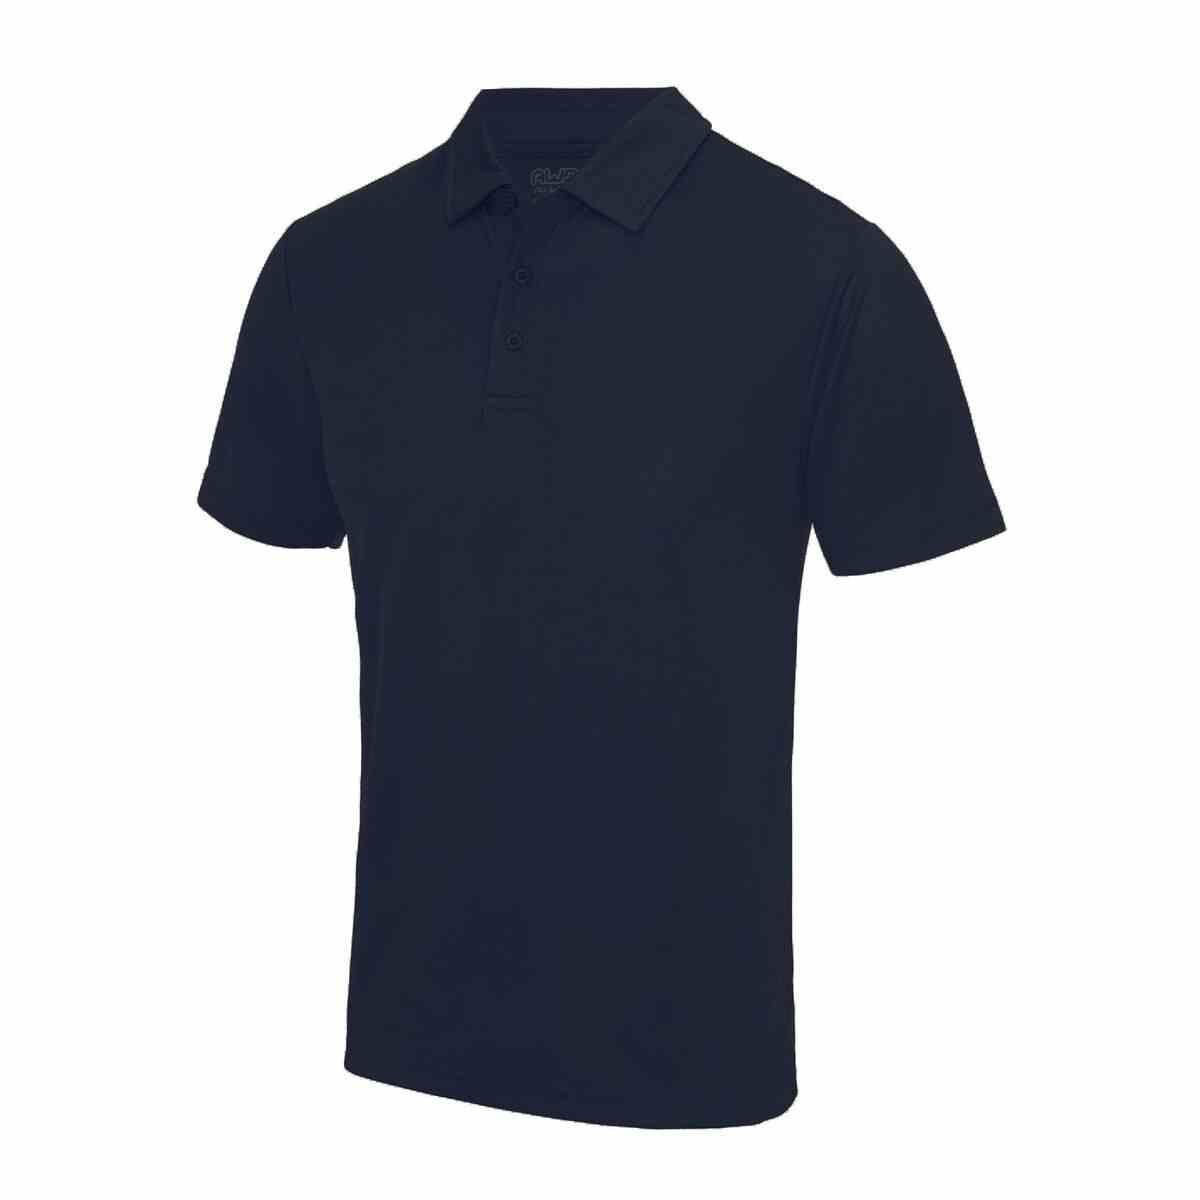 French Navy Poolside Polo Shirt